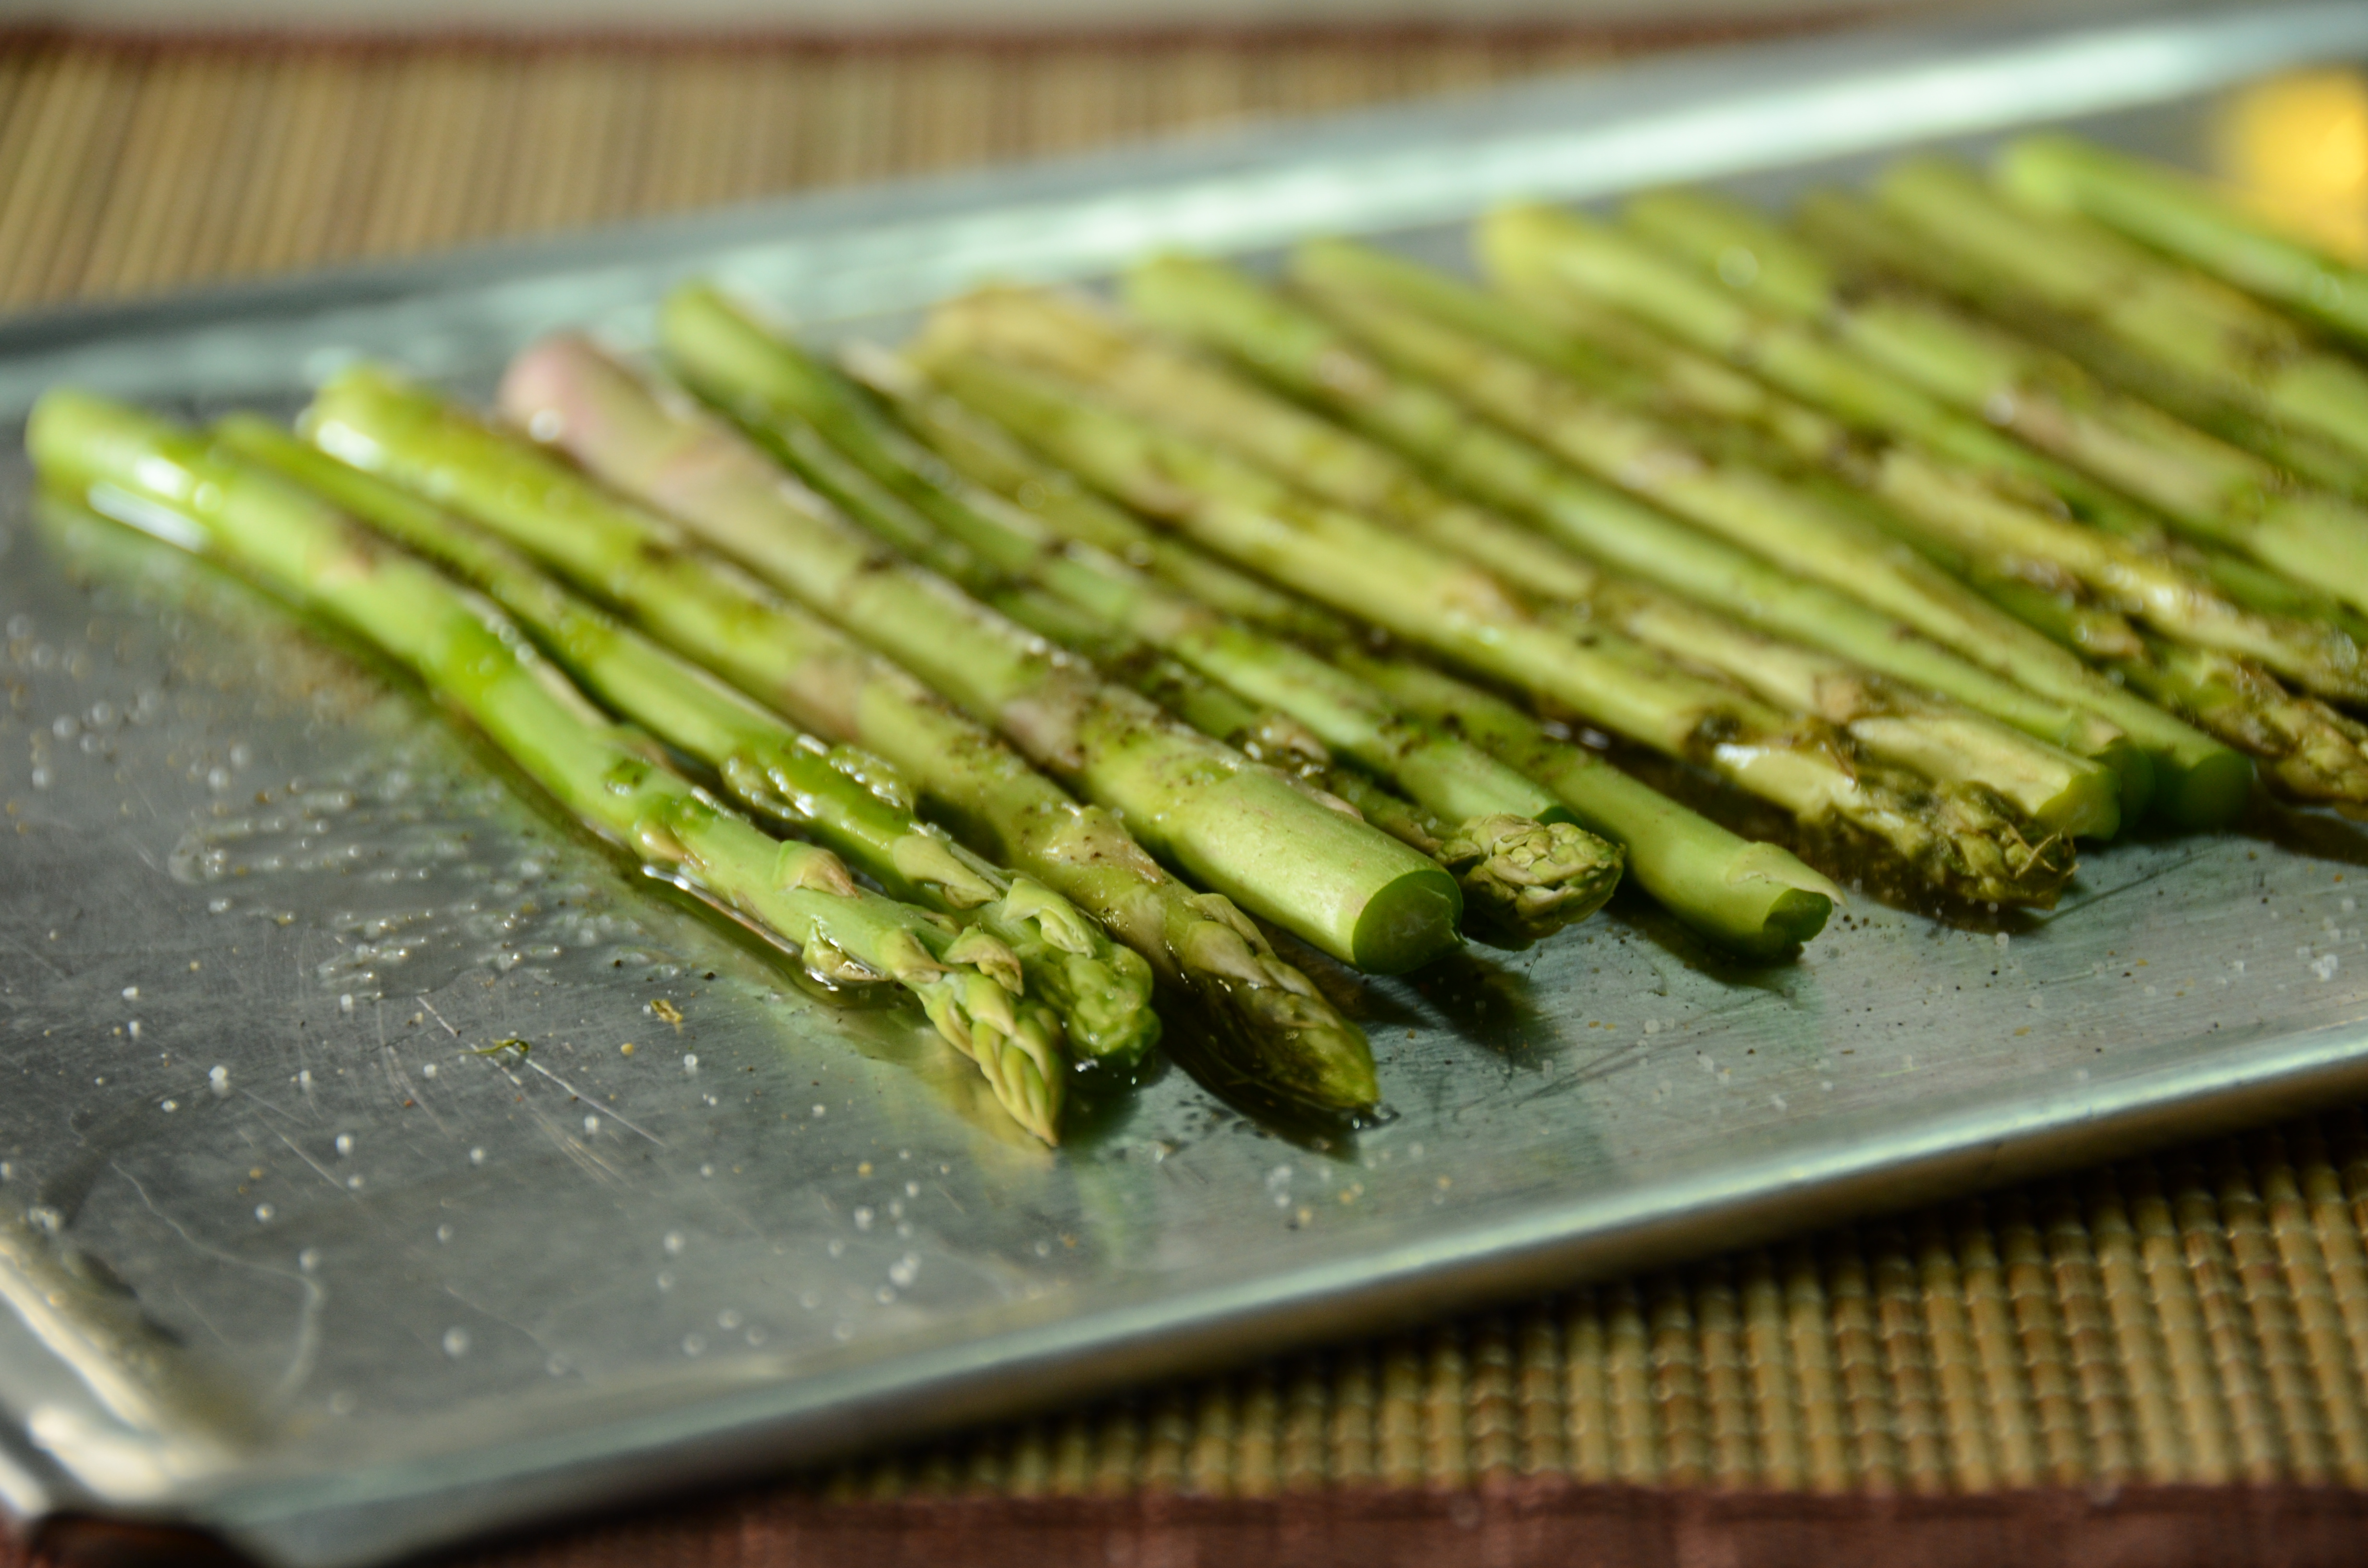 These Are the 5 Best Ways to Prepare Asparagus